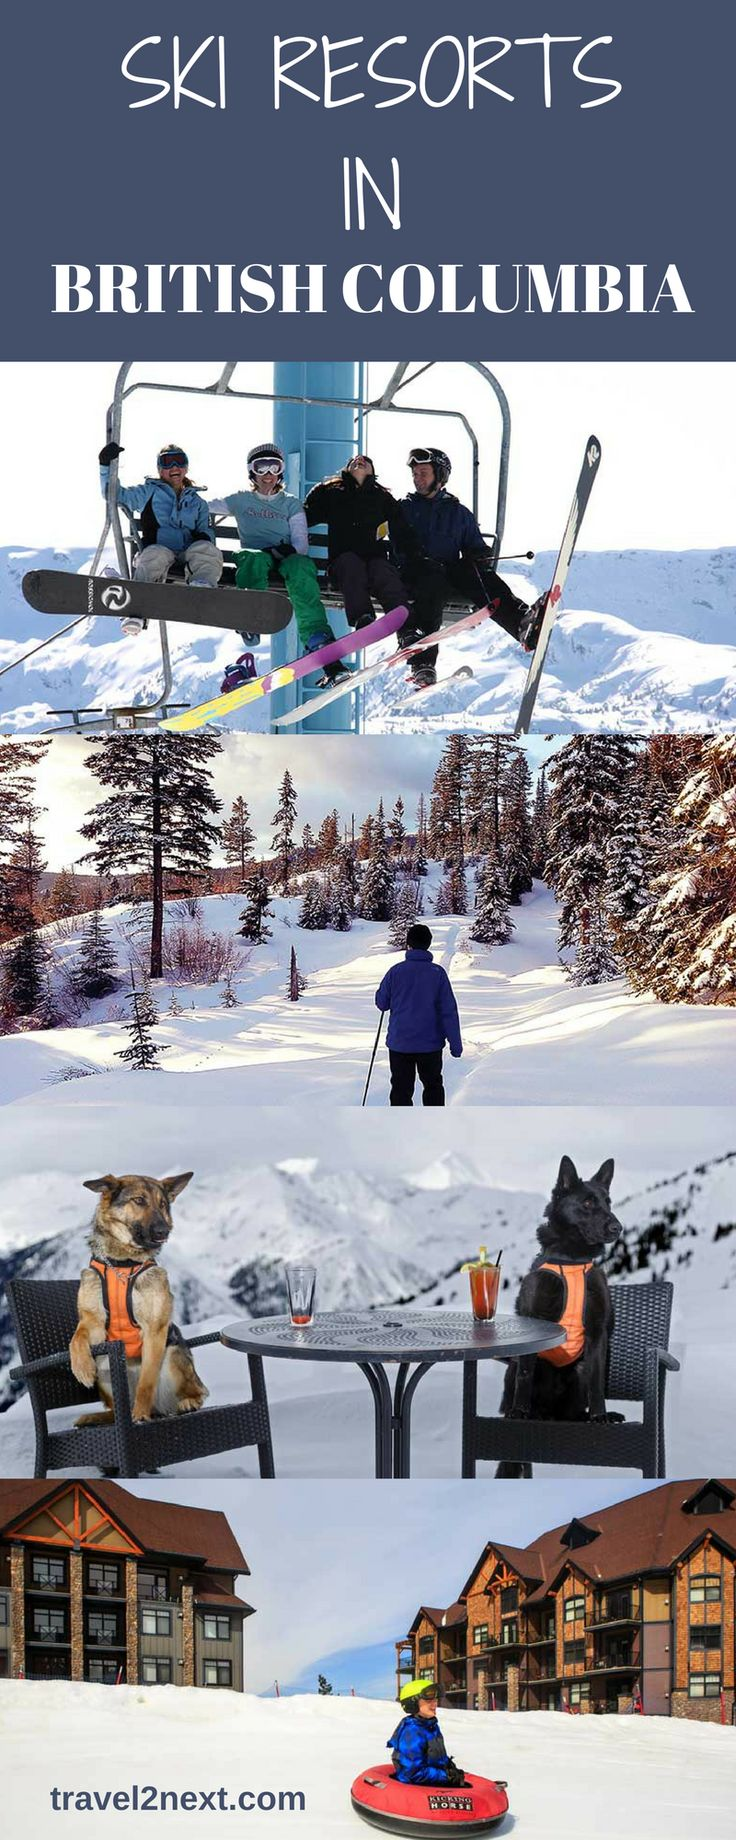 Ski resorts in British Columbia, Canada | Ski Canada. Winter is a magical time of year to visit British Columbia in Canada. When snow falls, it's a white winter wonderland.